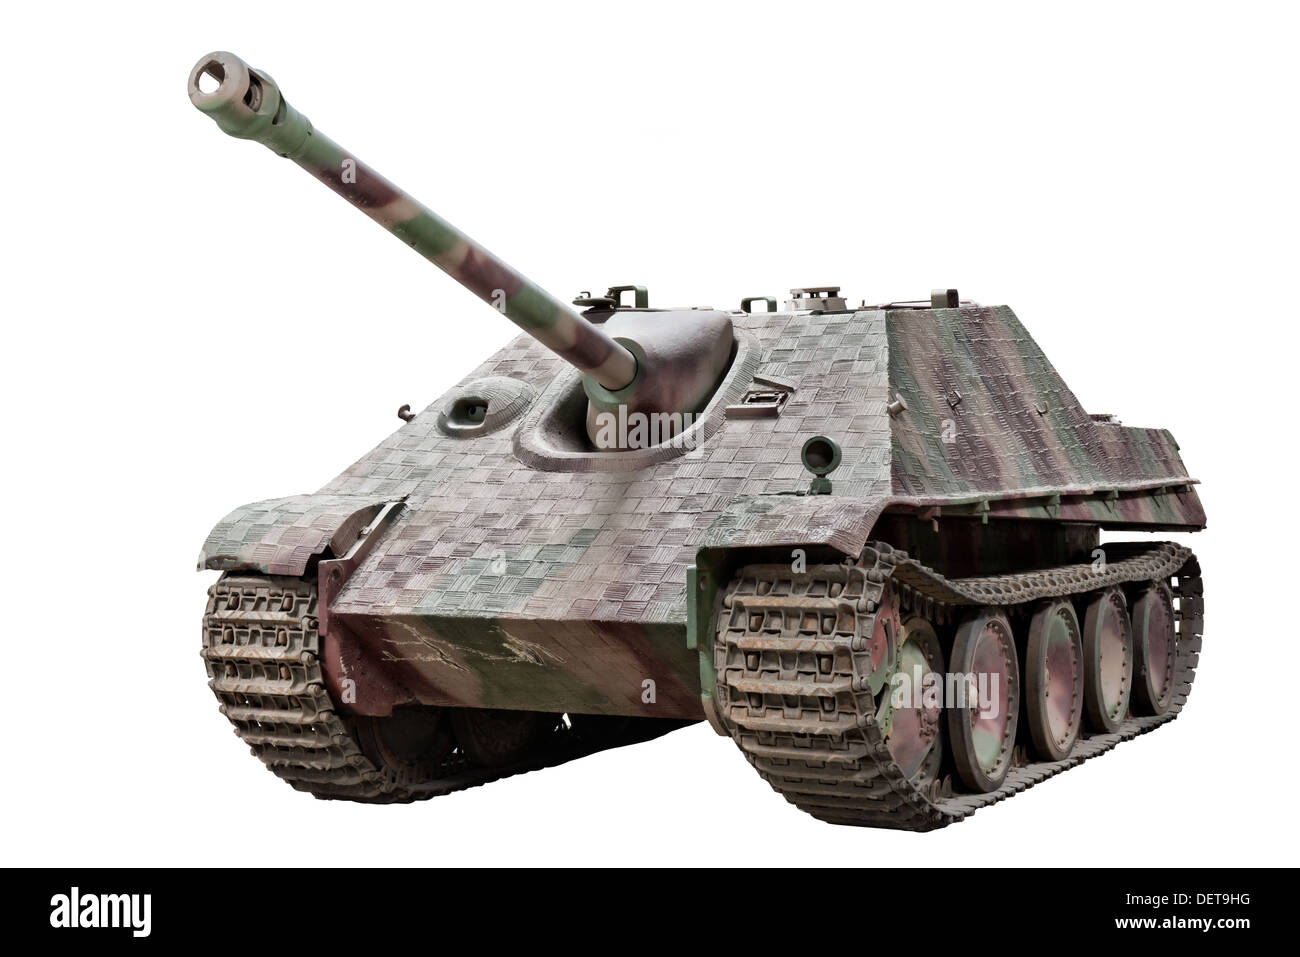 Self Propelled Cart >> A cut out of a Jagdpanzer V (5) (Sd.Kfz.173) 88 mm self propelled Stock Photo: 60770684 - Alamy